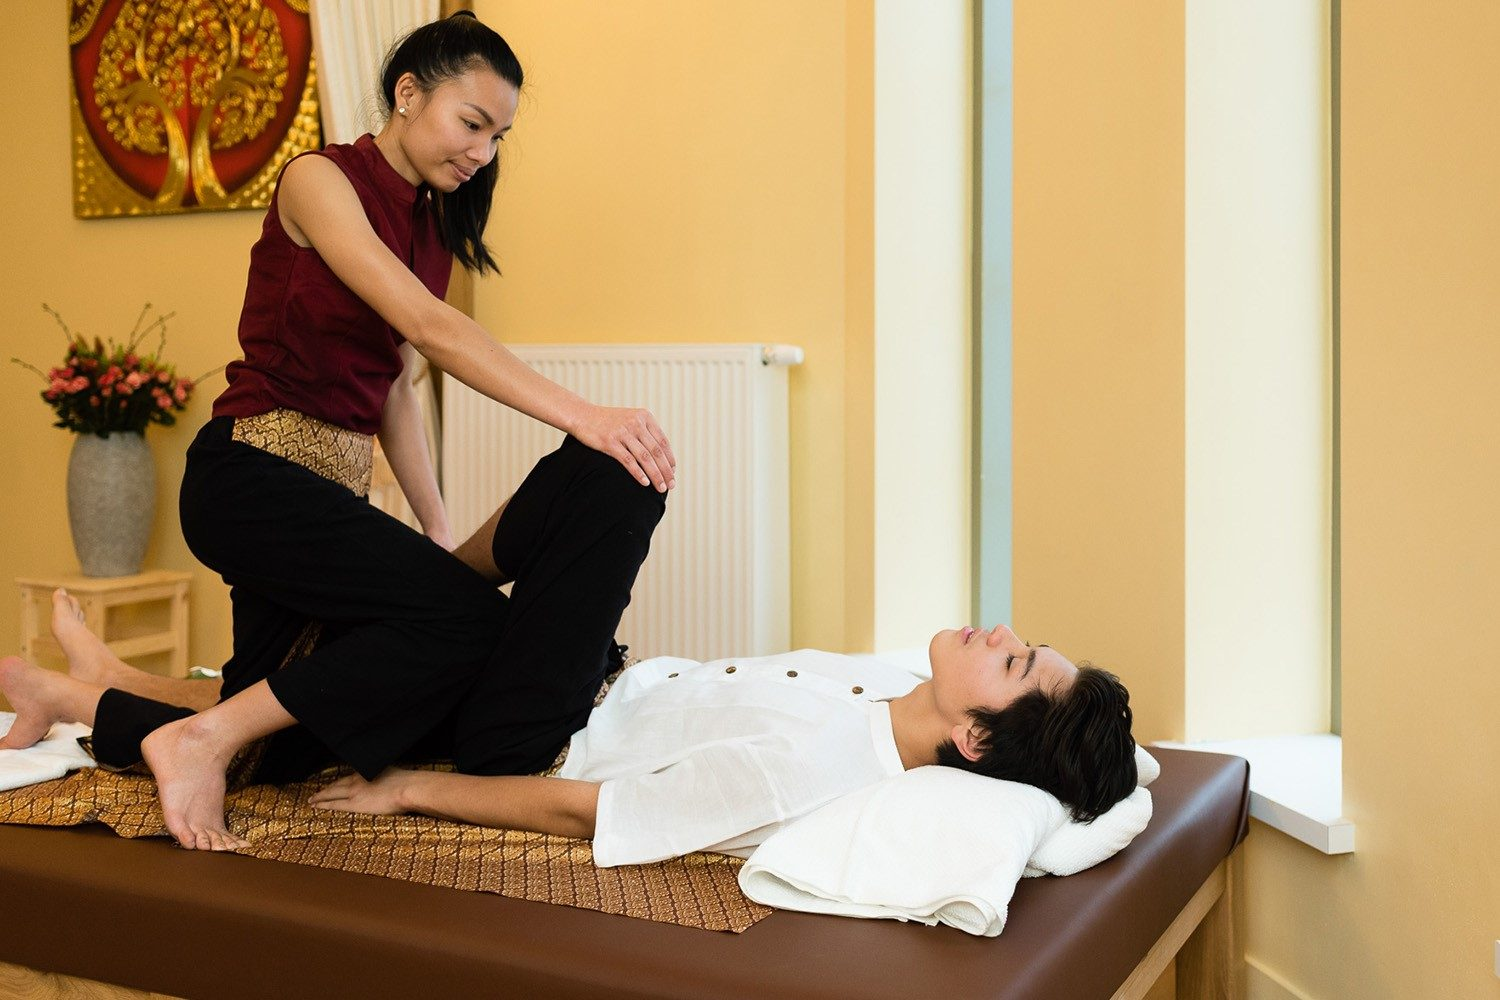 015 RoyalThaiMassage©COBAPhotography WEB 1500×1000